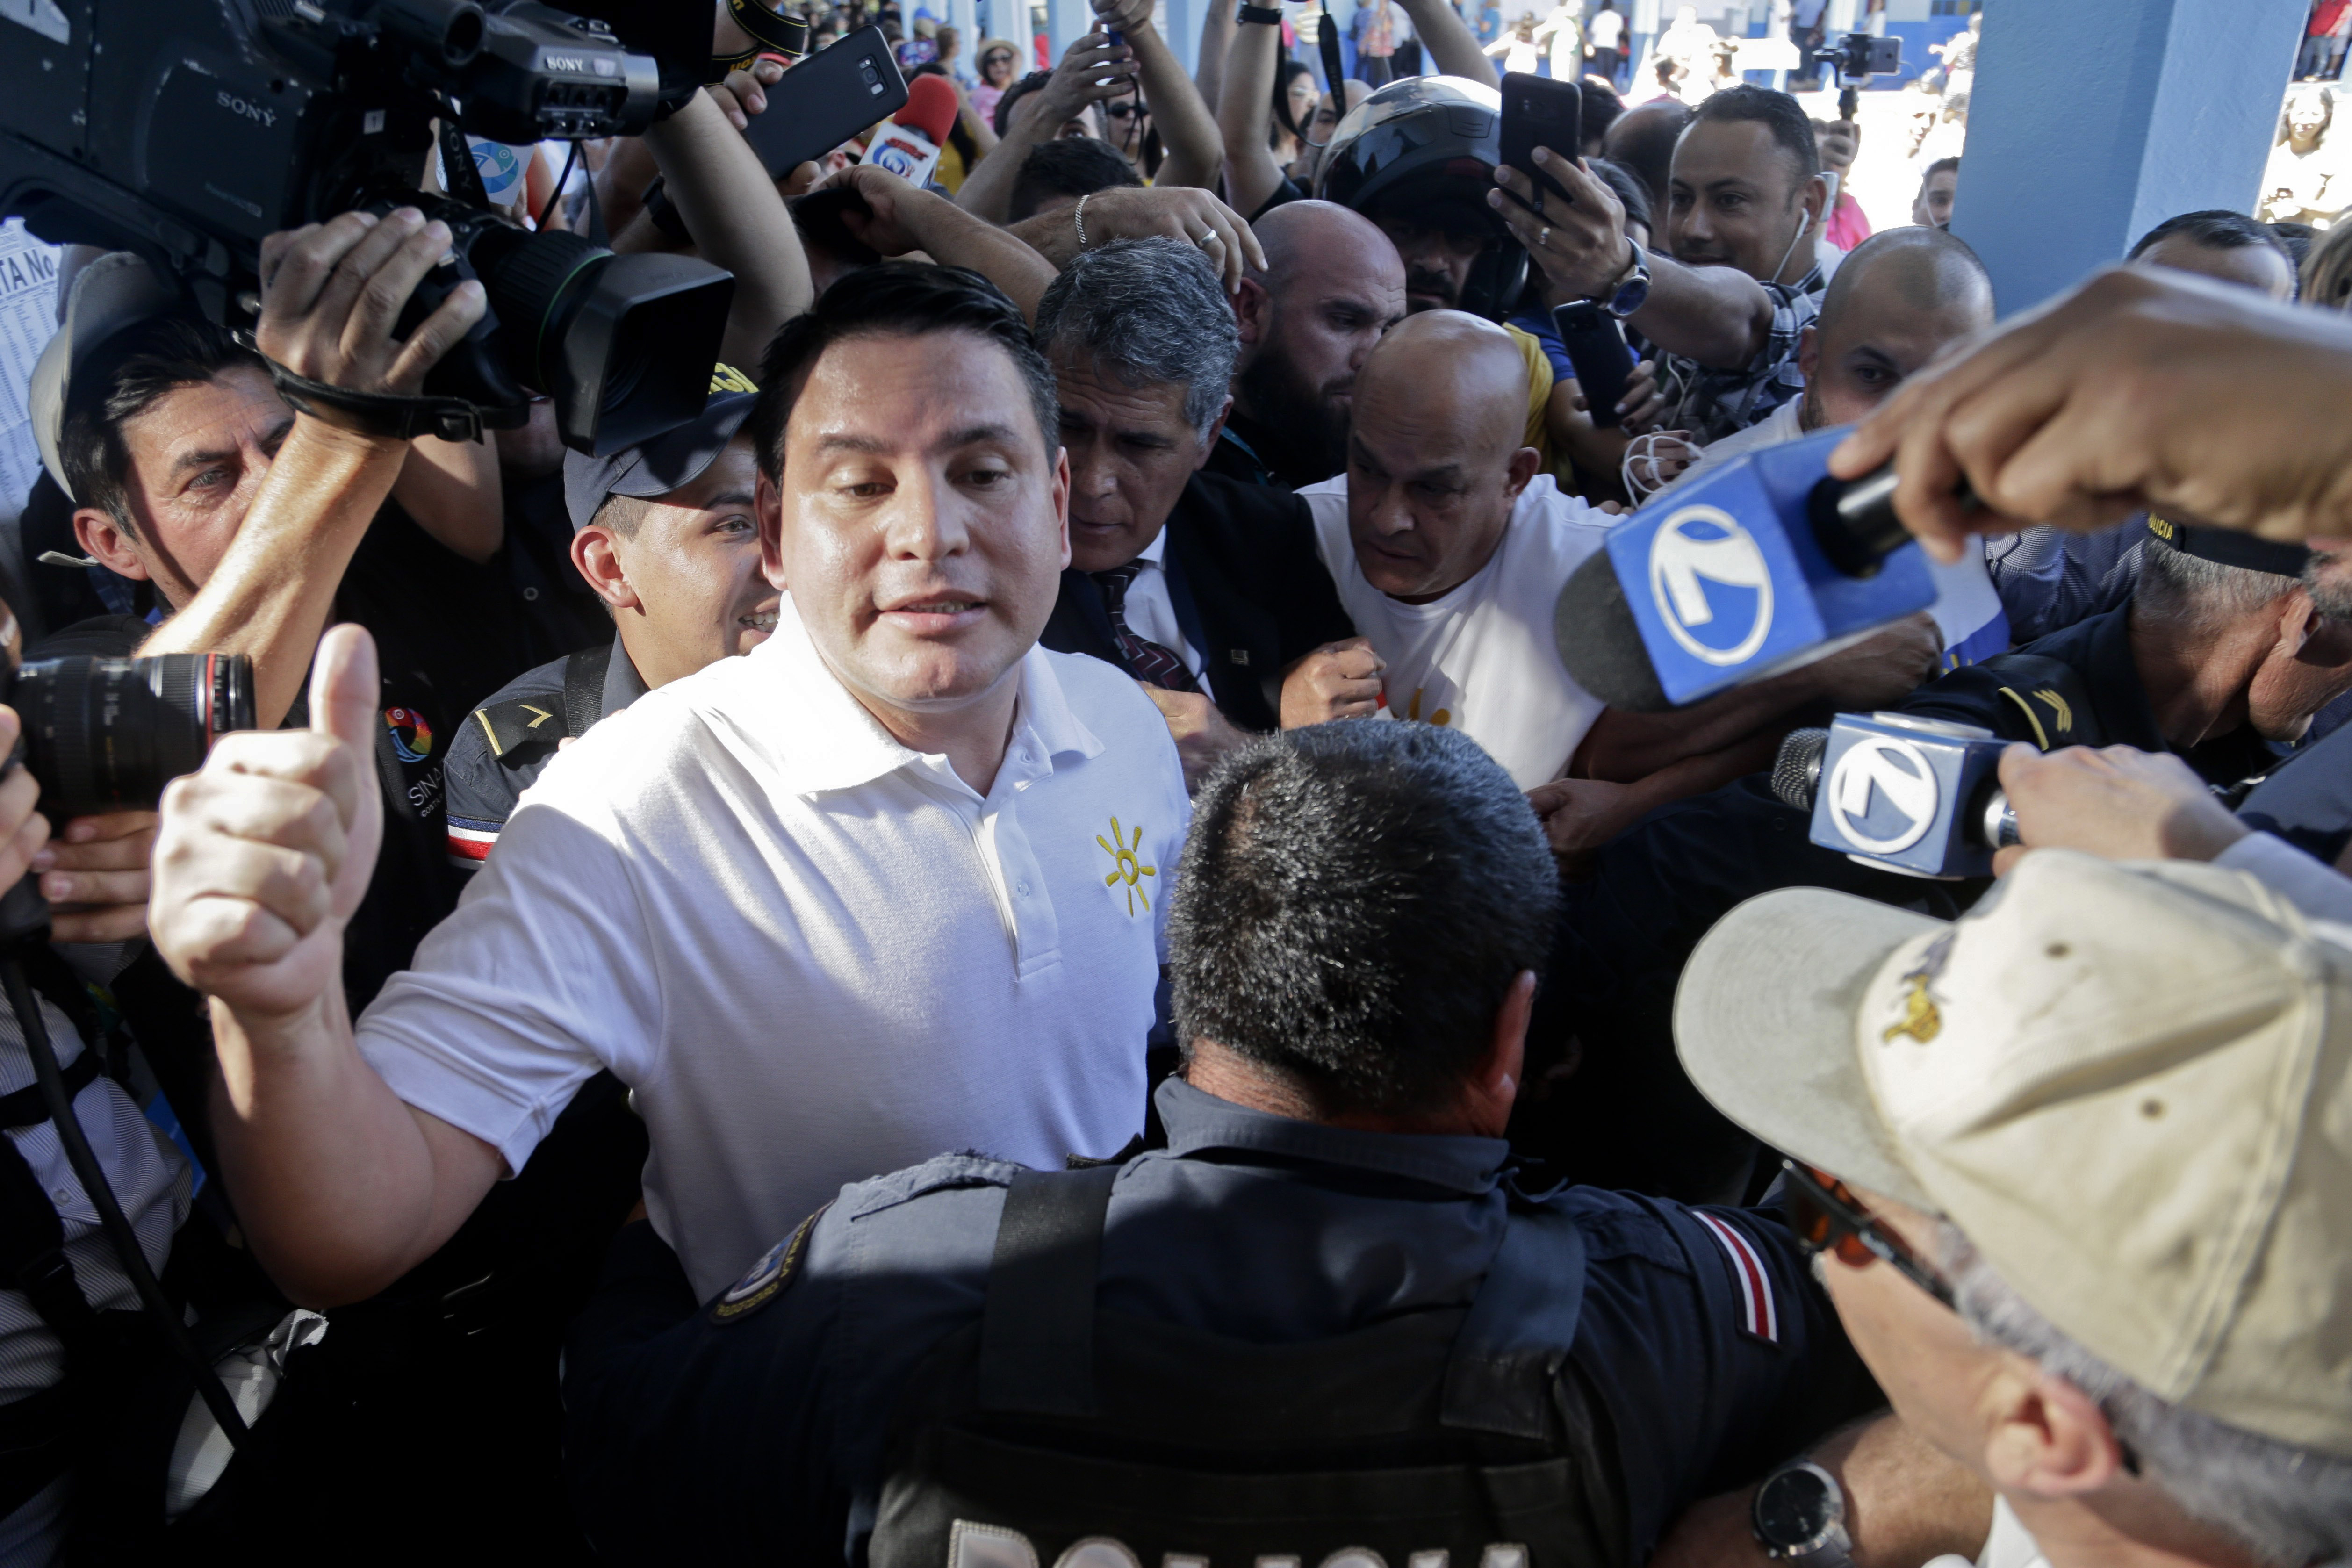 Presidential candidate Fabricio Alvarado, with the National Restoration party, gives a thumbs-up as he's surrounded by the press at a polling station during general elections in San Jose, Costa Rica, Feb. 4, 2018.